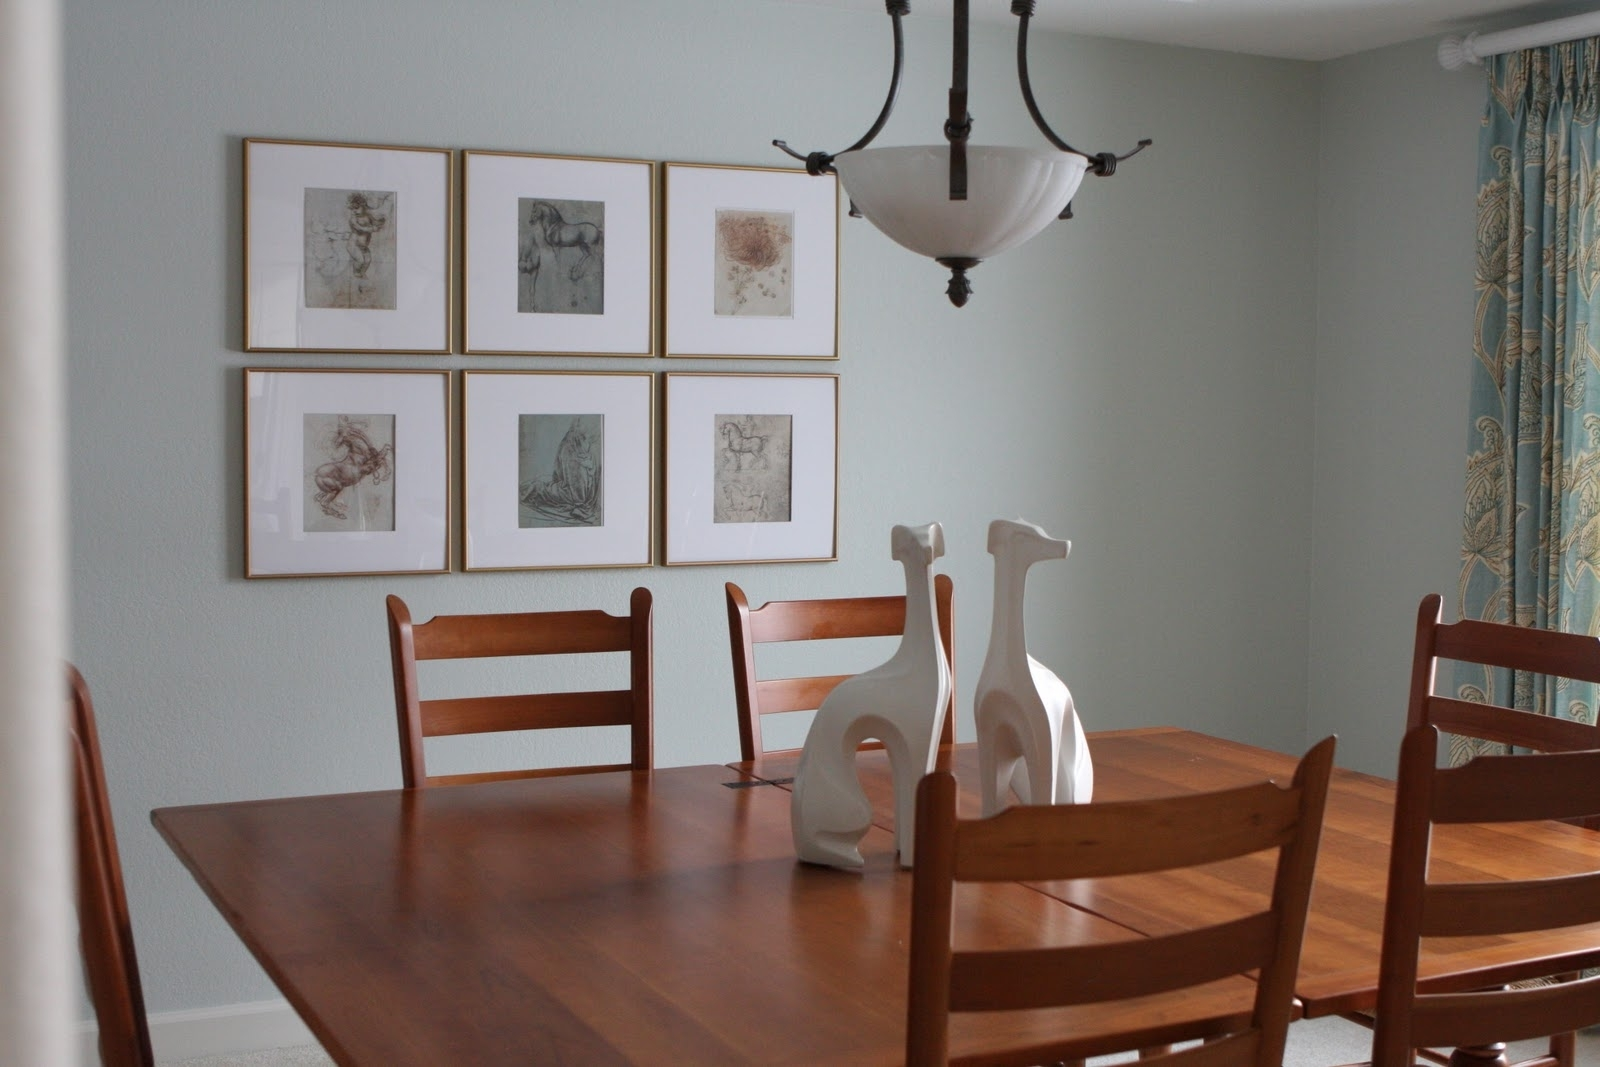 Most Recently Released Dining Room Wall Art Contemporary With Photos Of Dining Room Decor Regarding Dining Room Wall Art (View 10 of 15)